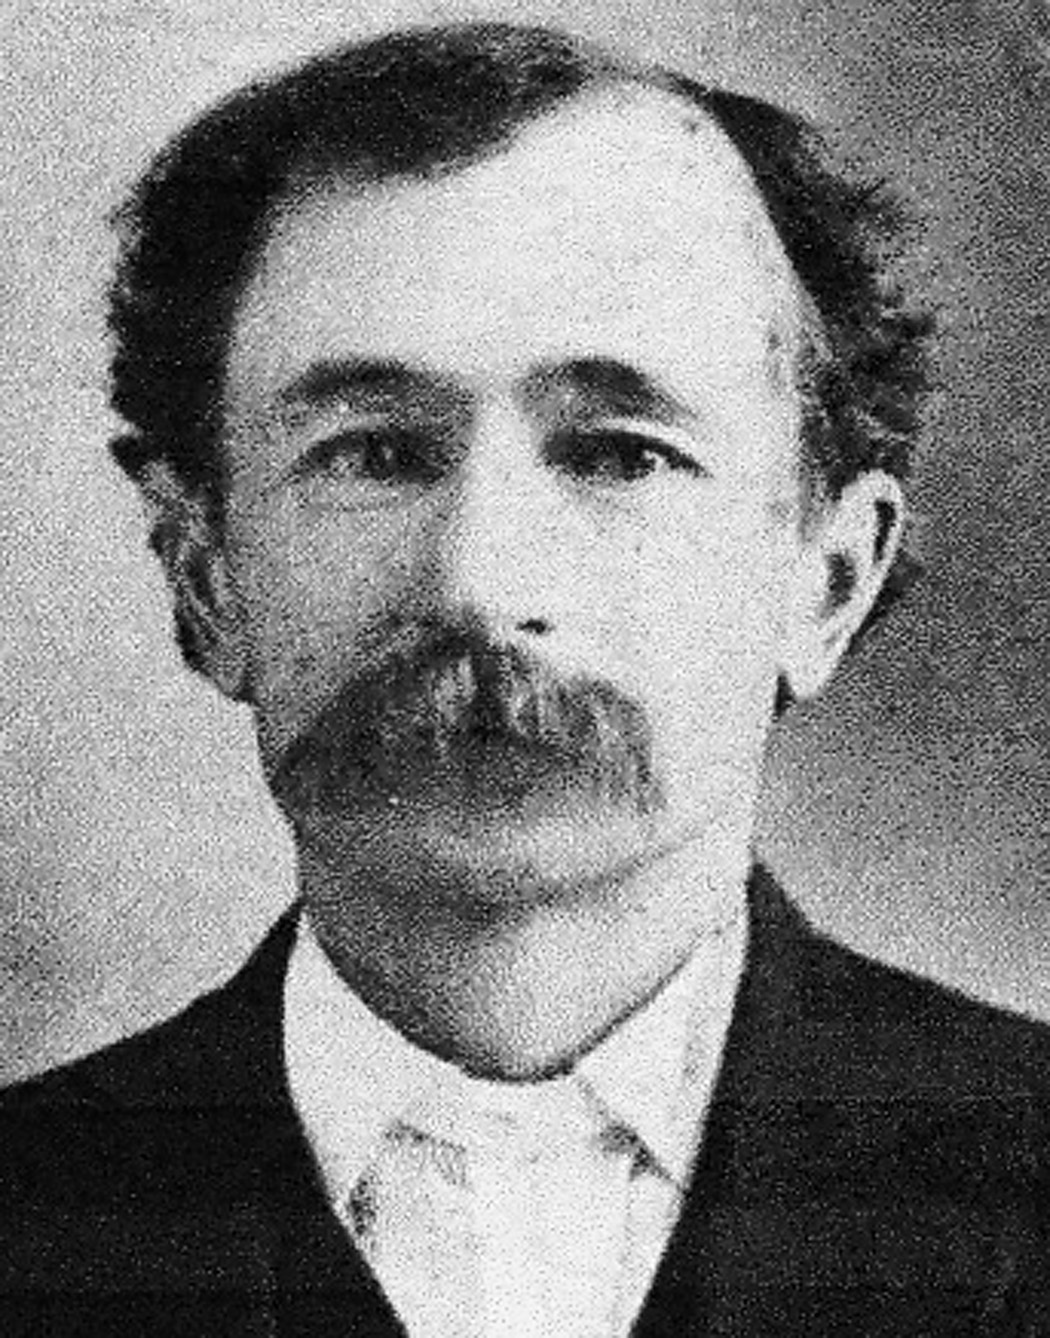 Campbell Russell (1863 - 1937)